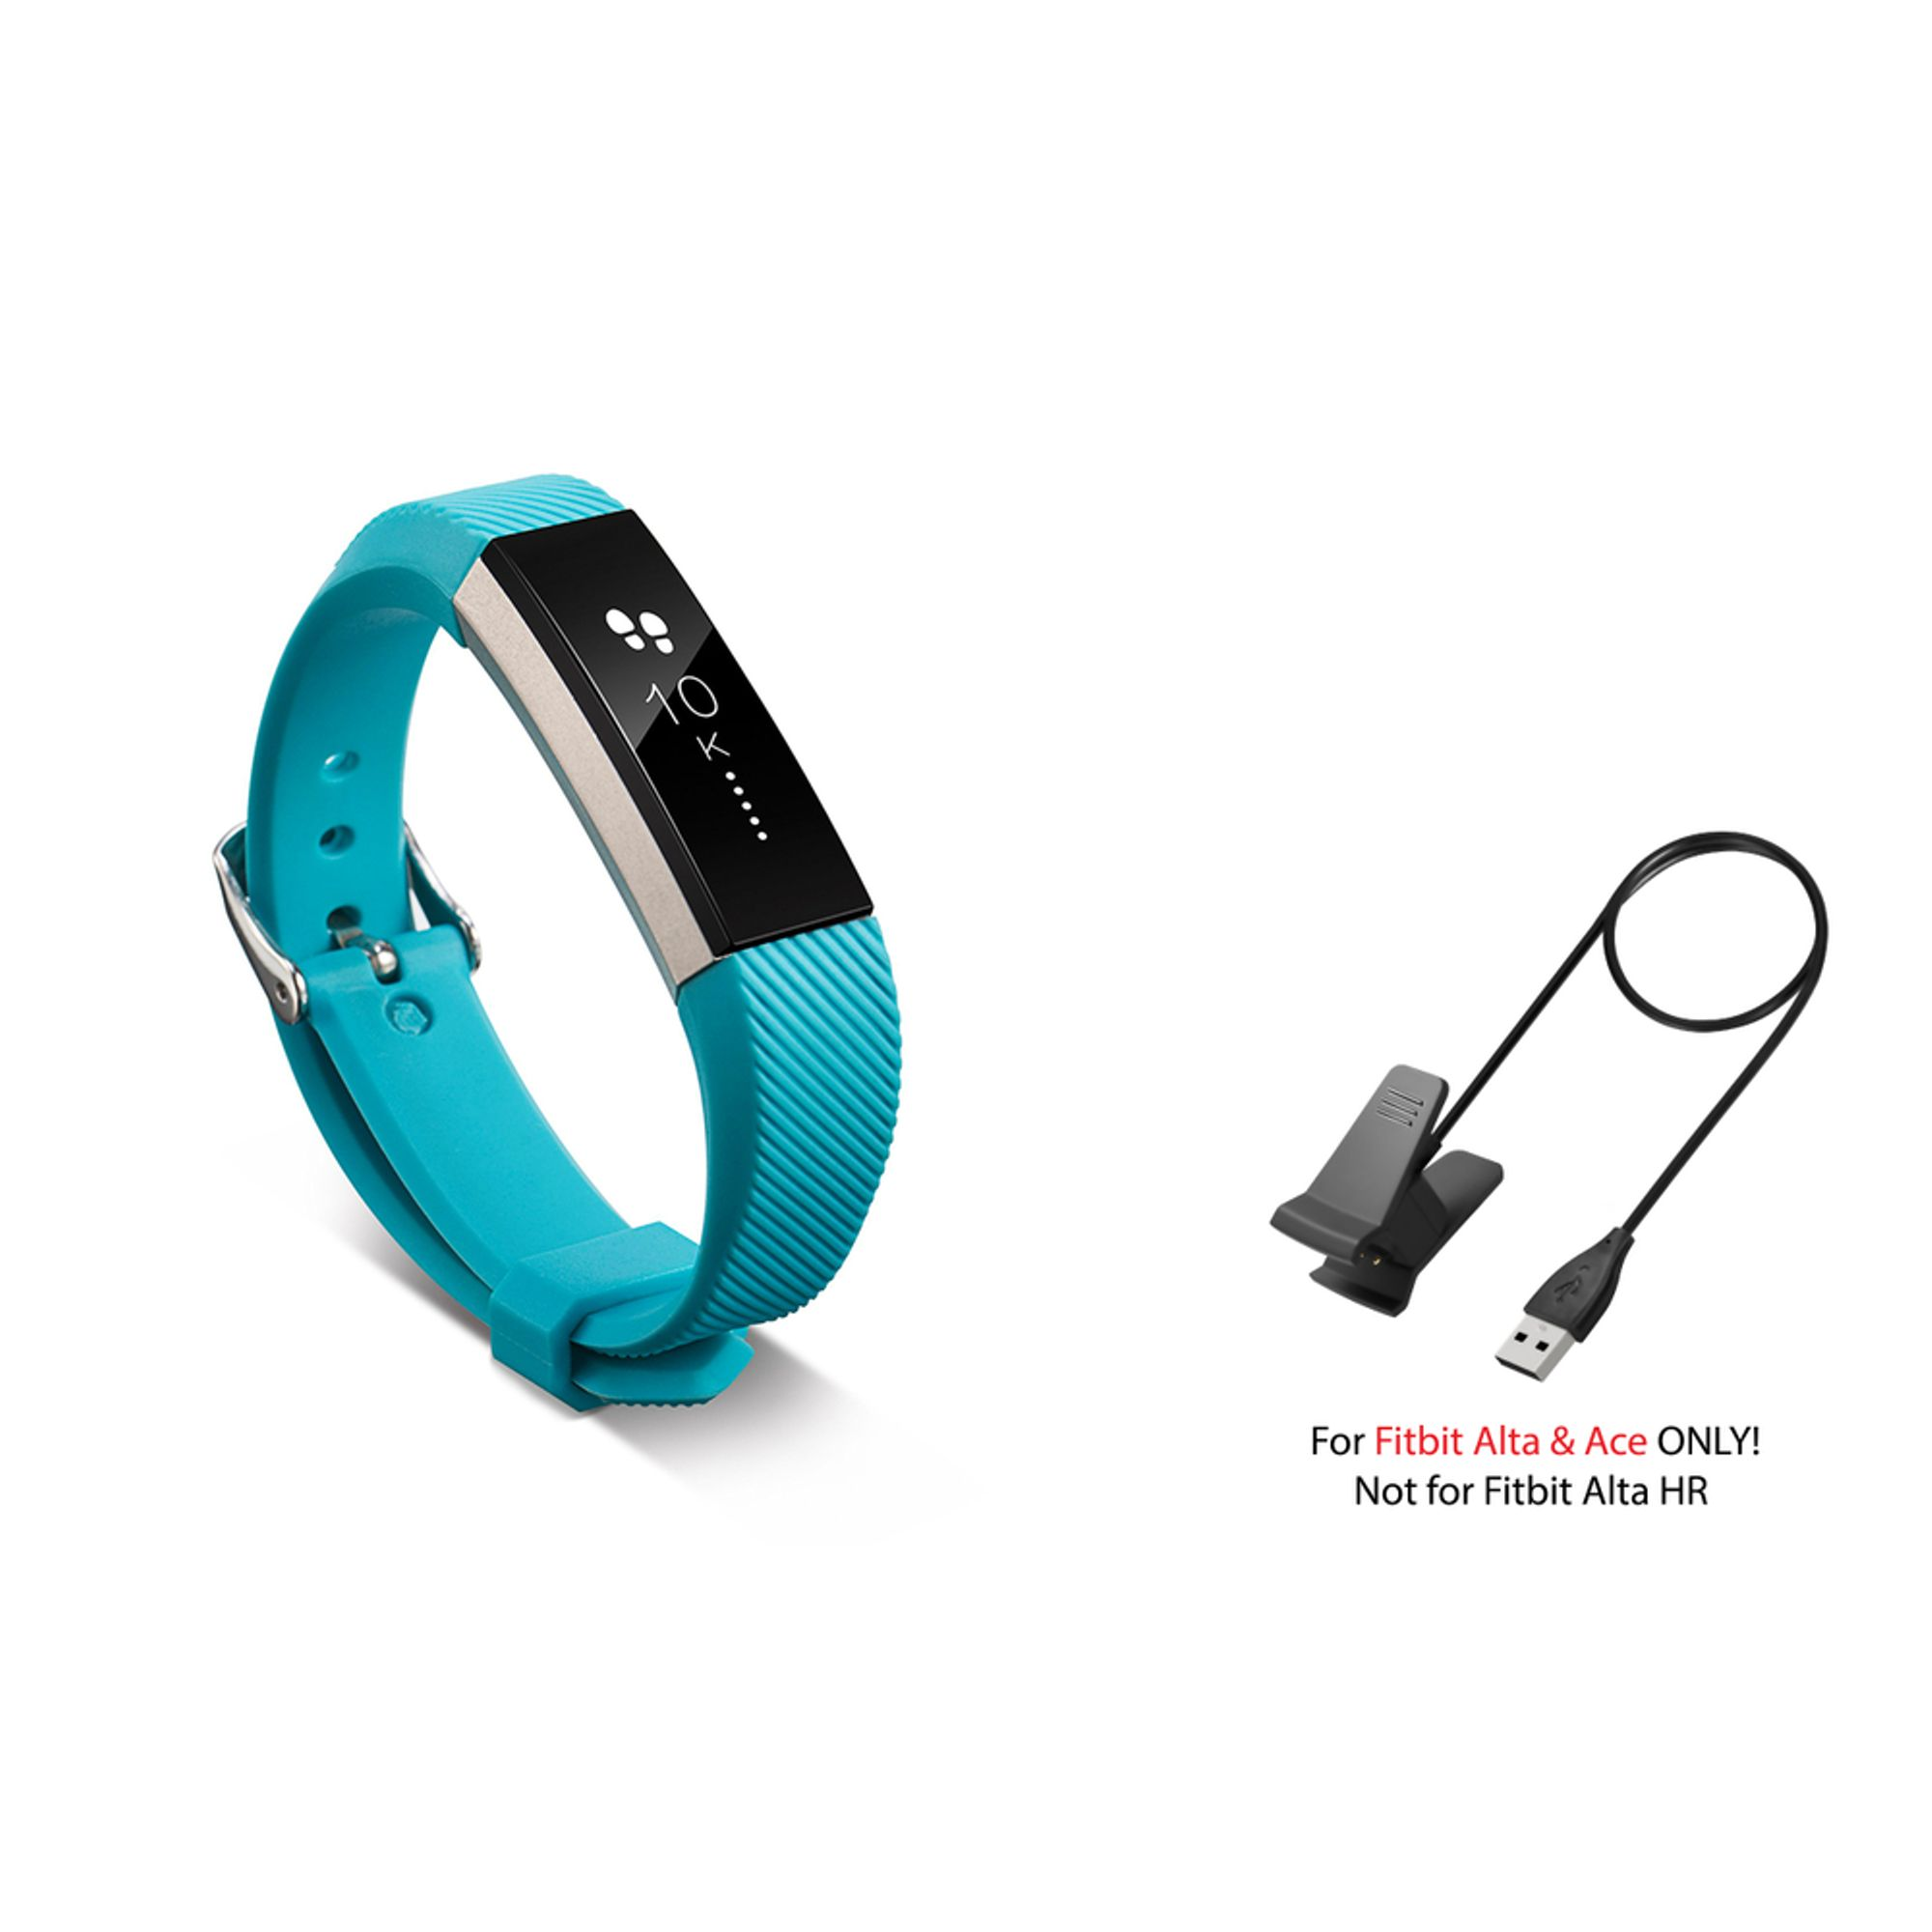 Zodaca 2 Pcs Replacement Wrist Band with USB Charging Cable for Fitbit Alta / Ace - Turquoise